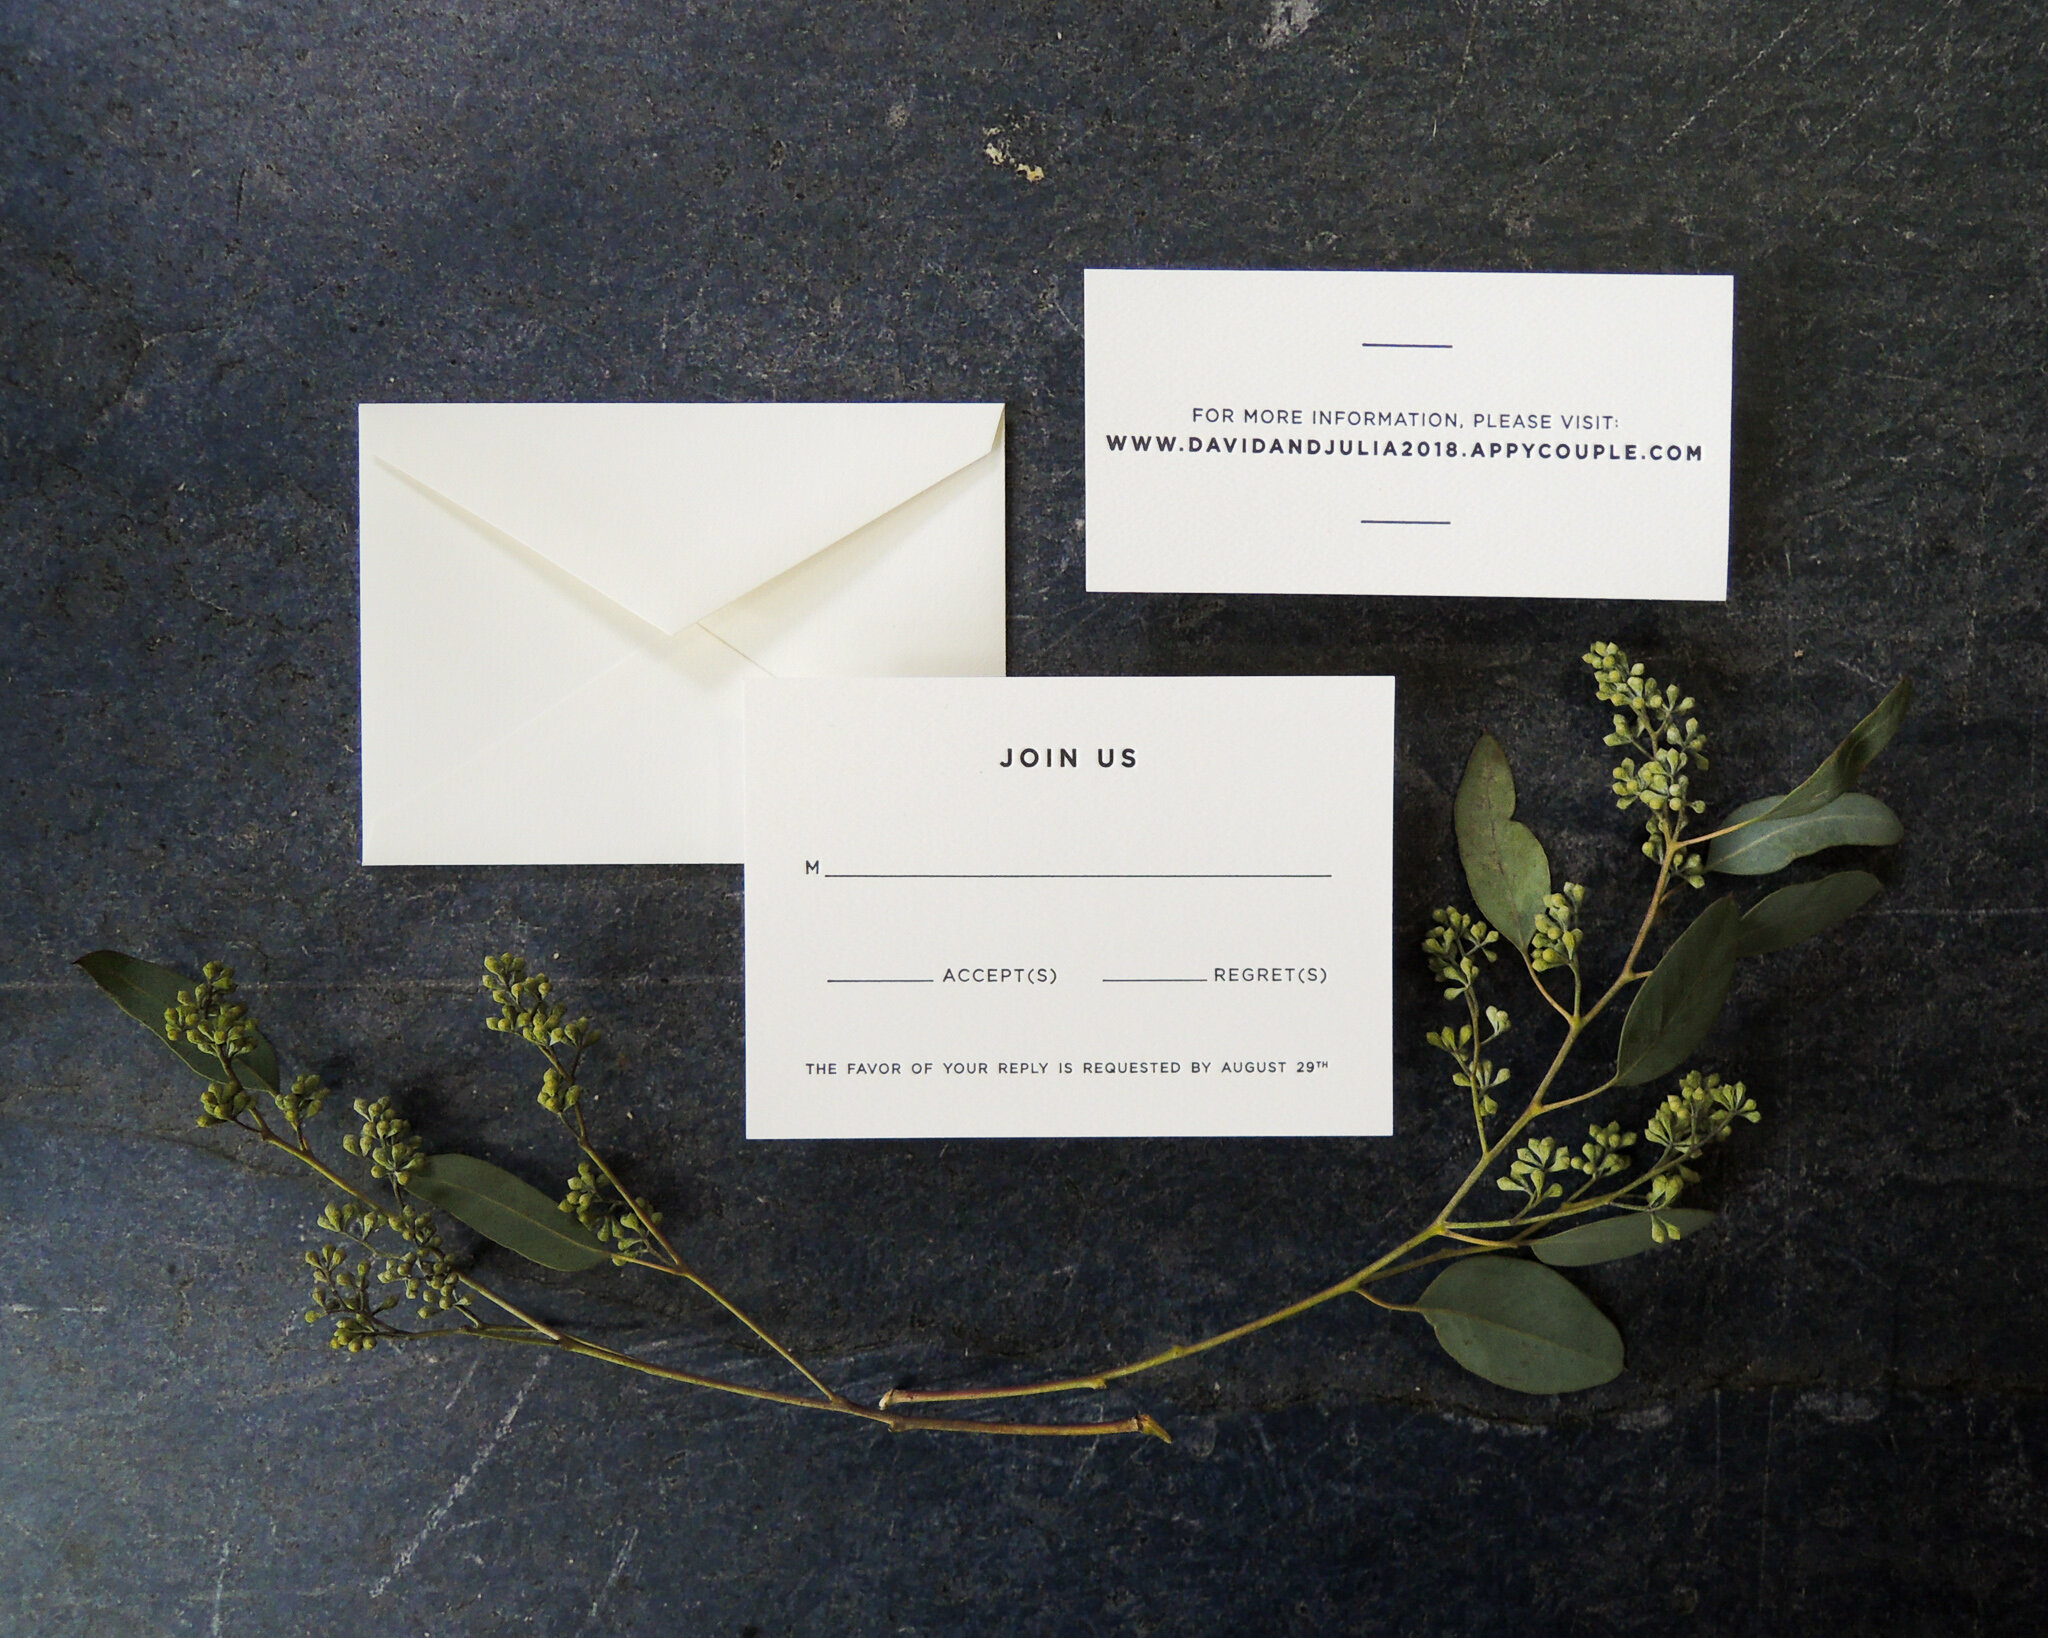 TypeA-Invitations_TheJulia_MinimalMonodernWeddingInvitationSuite_CustomMonogram_Leterpress_RSVP-WeddingWebsiteCard-1.jpg